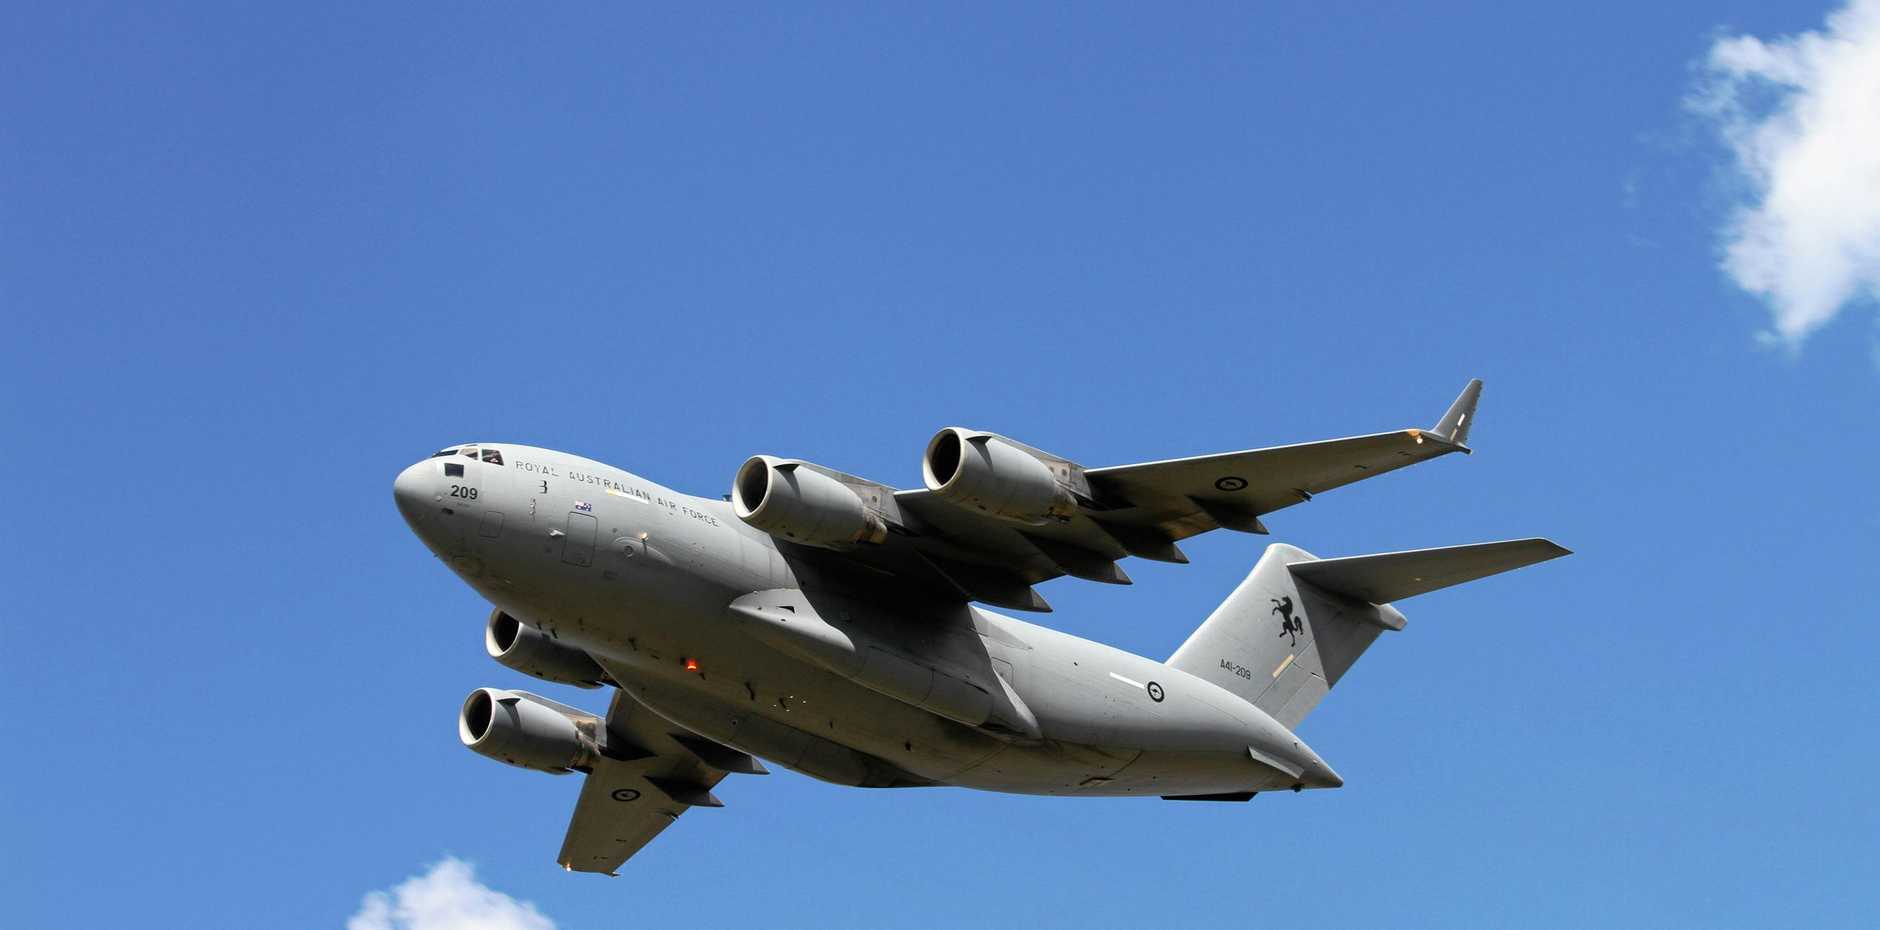 DON'T MISS: A Royal Australian Air Force C-17A Globemaster aircraft will fly over the Fraser Coast today.